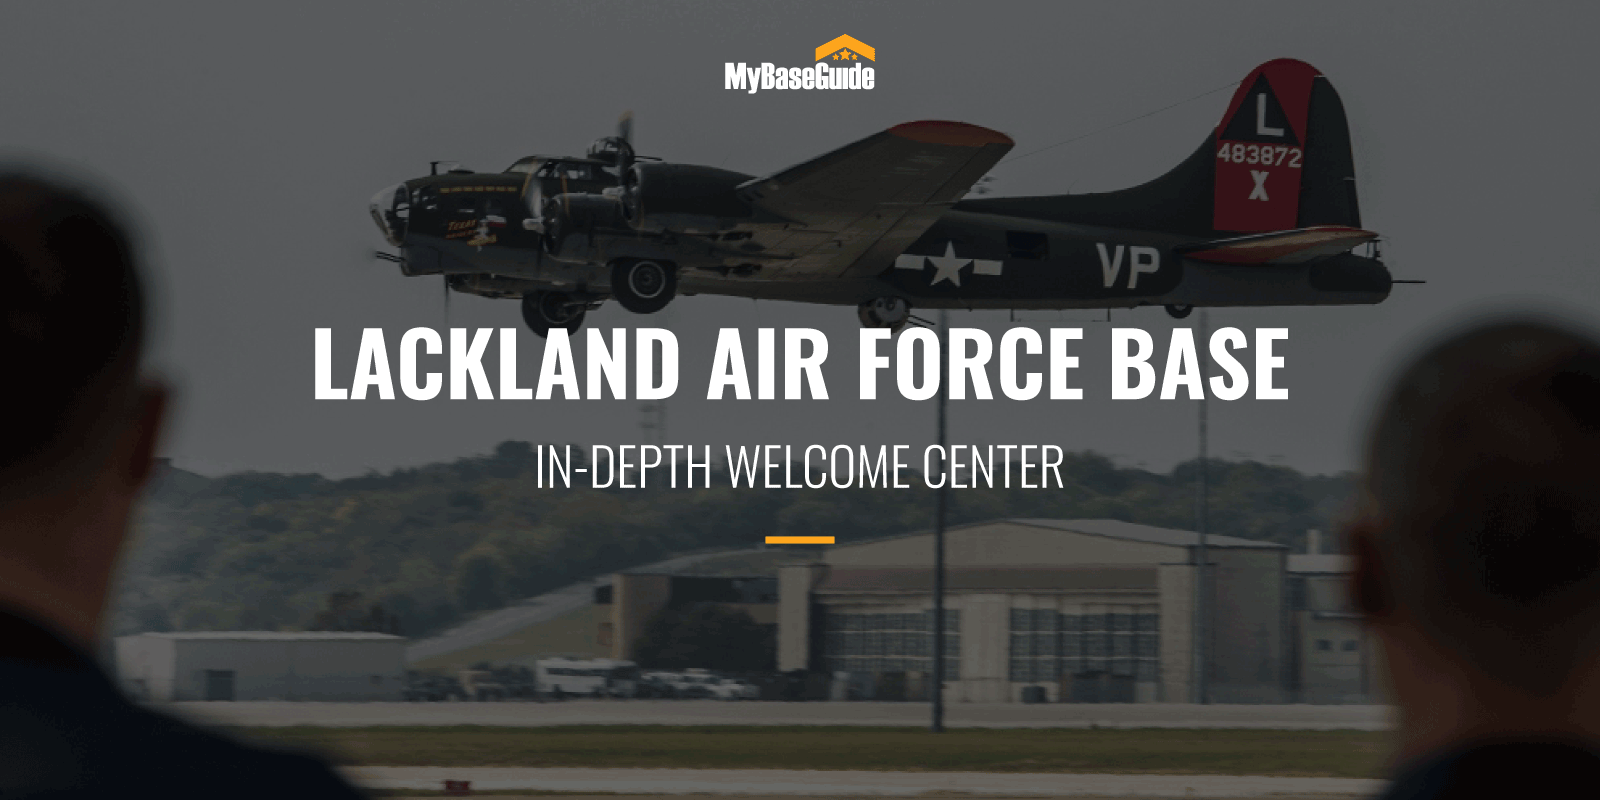 Lackland AFB In-Depth Welcome Center